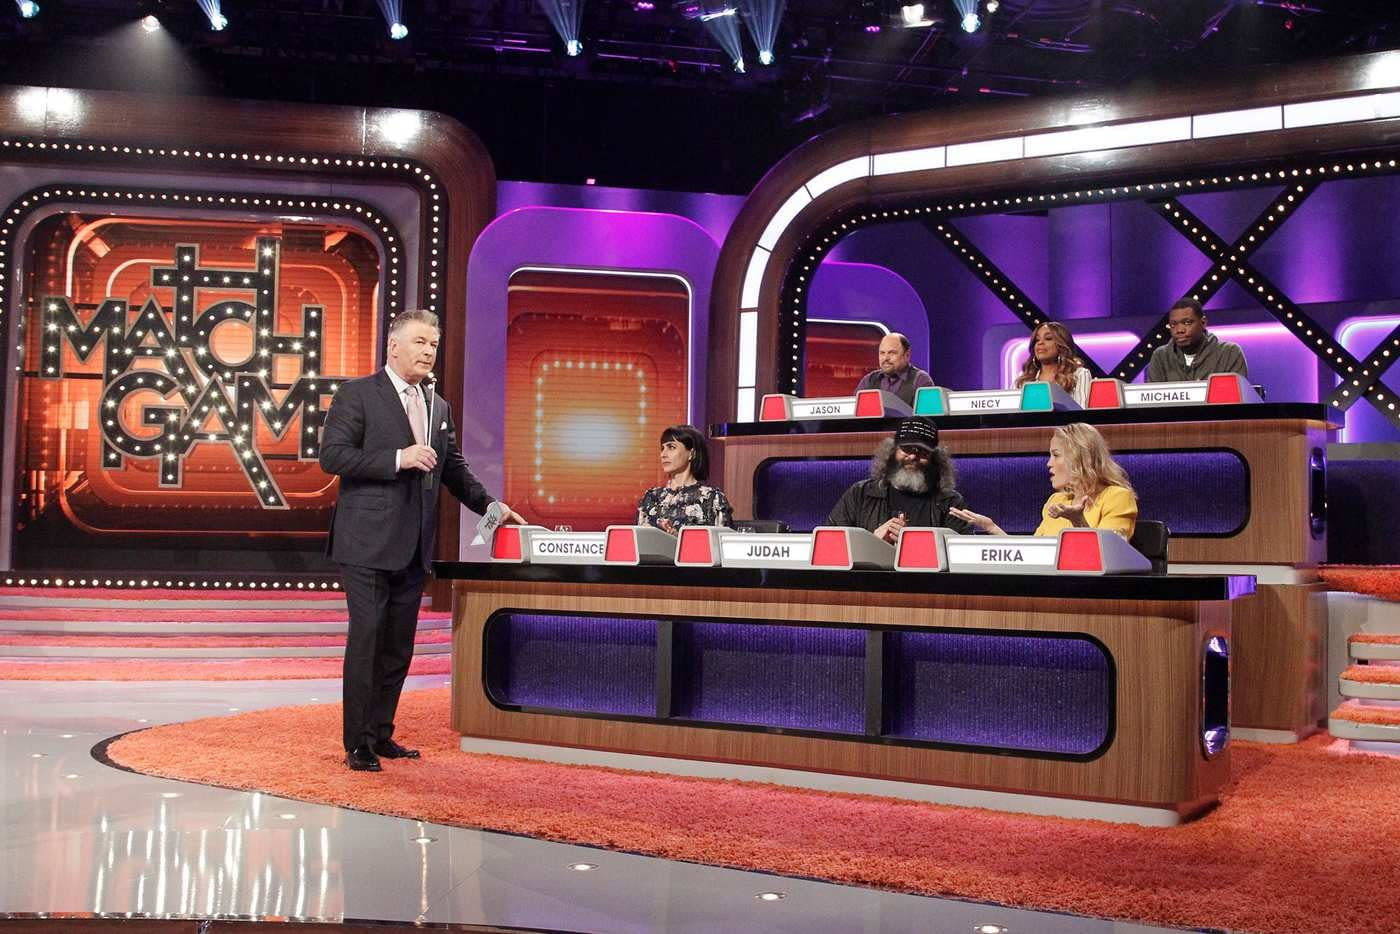 Press Your Luck, Card Sharks, Match Game: How I Learned To Stop Worrying And Love Game Shows Again